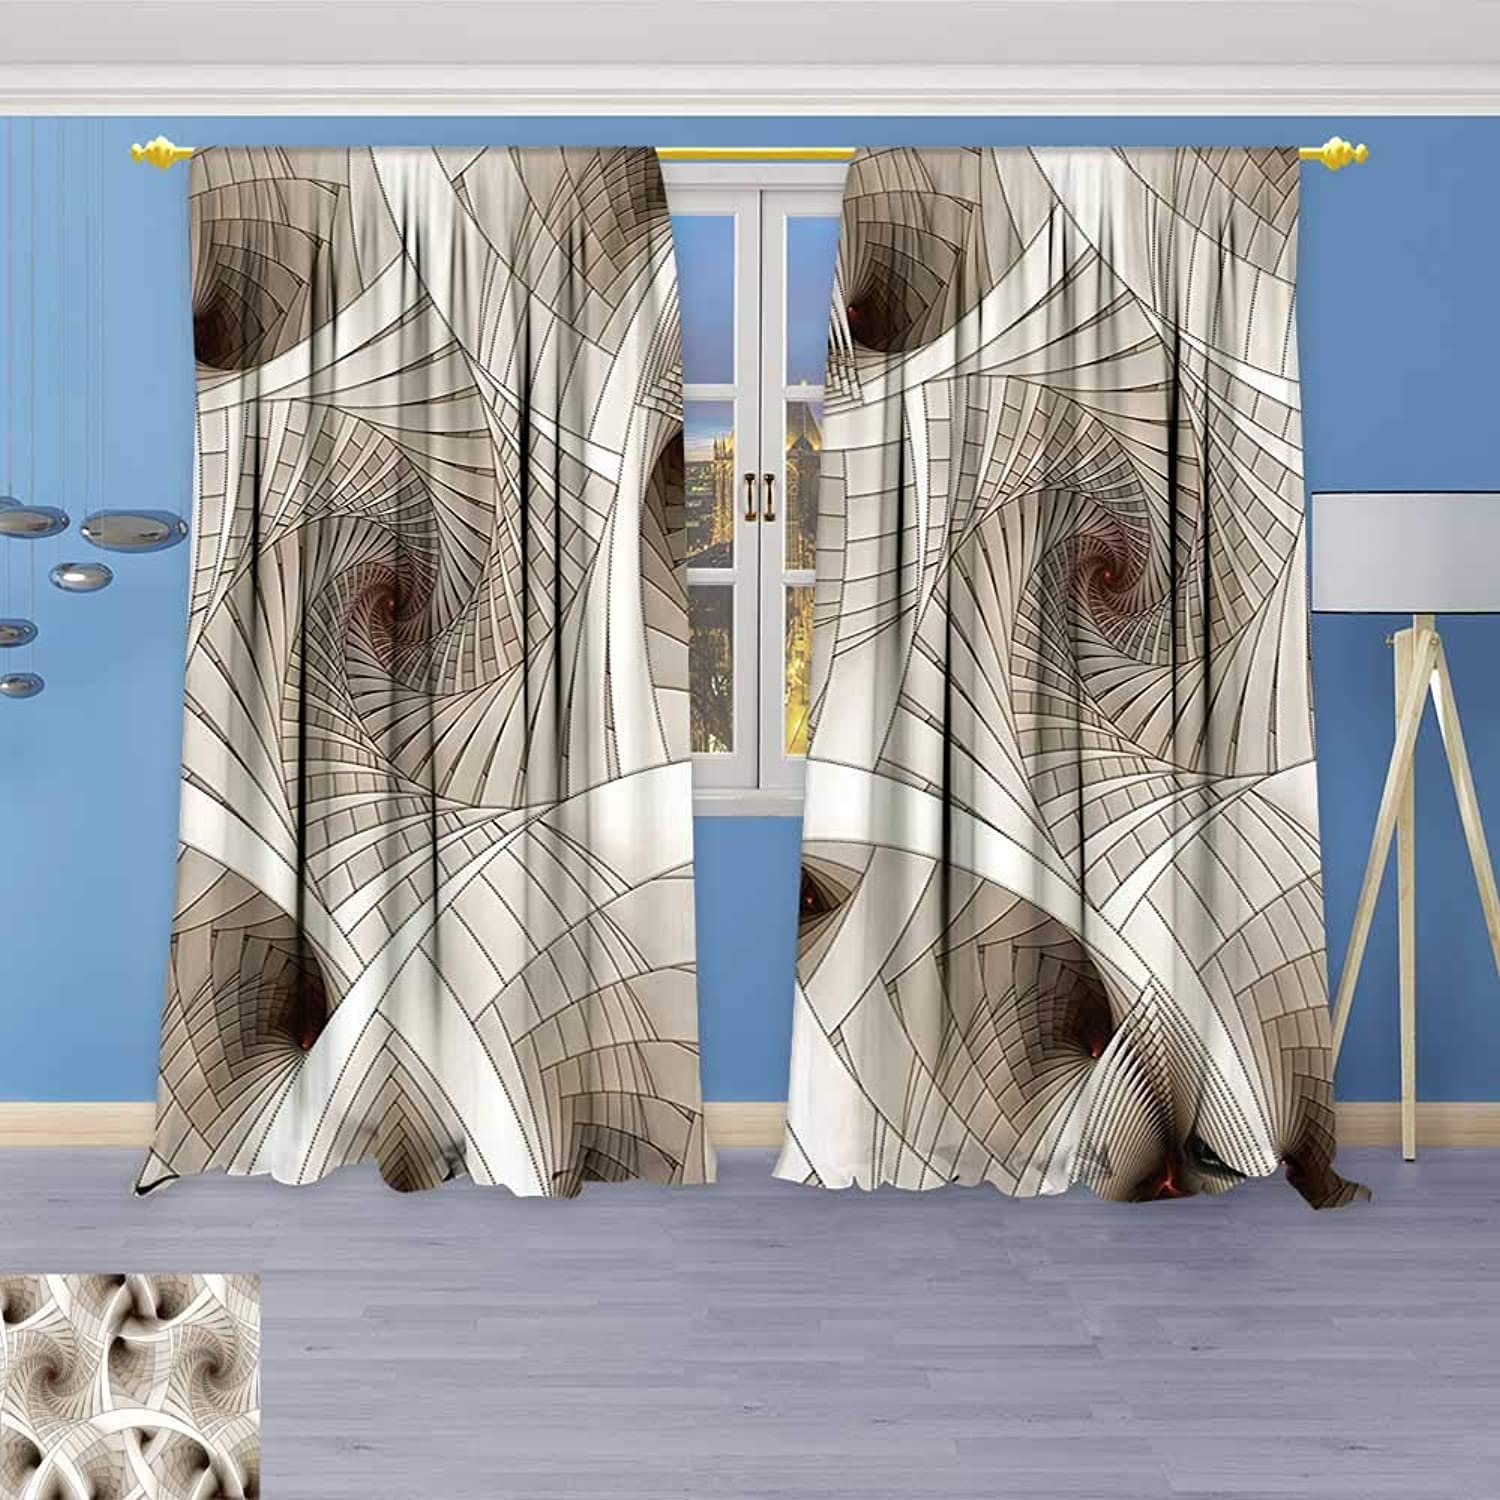 Philiphome Linen Curtains Digital Futuristic Curved Spirals Sci Fi Stylized Dynamic Motion Illustration Beige Print Window Curtain Drapes Set for Living Room